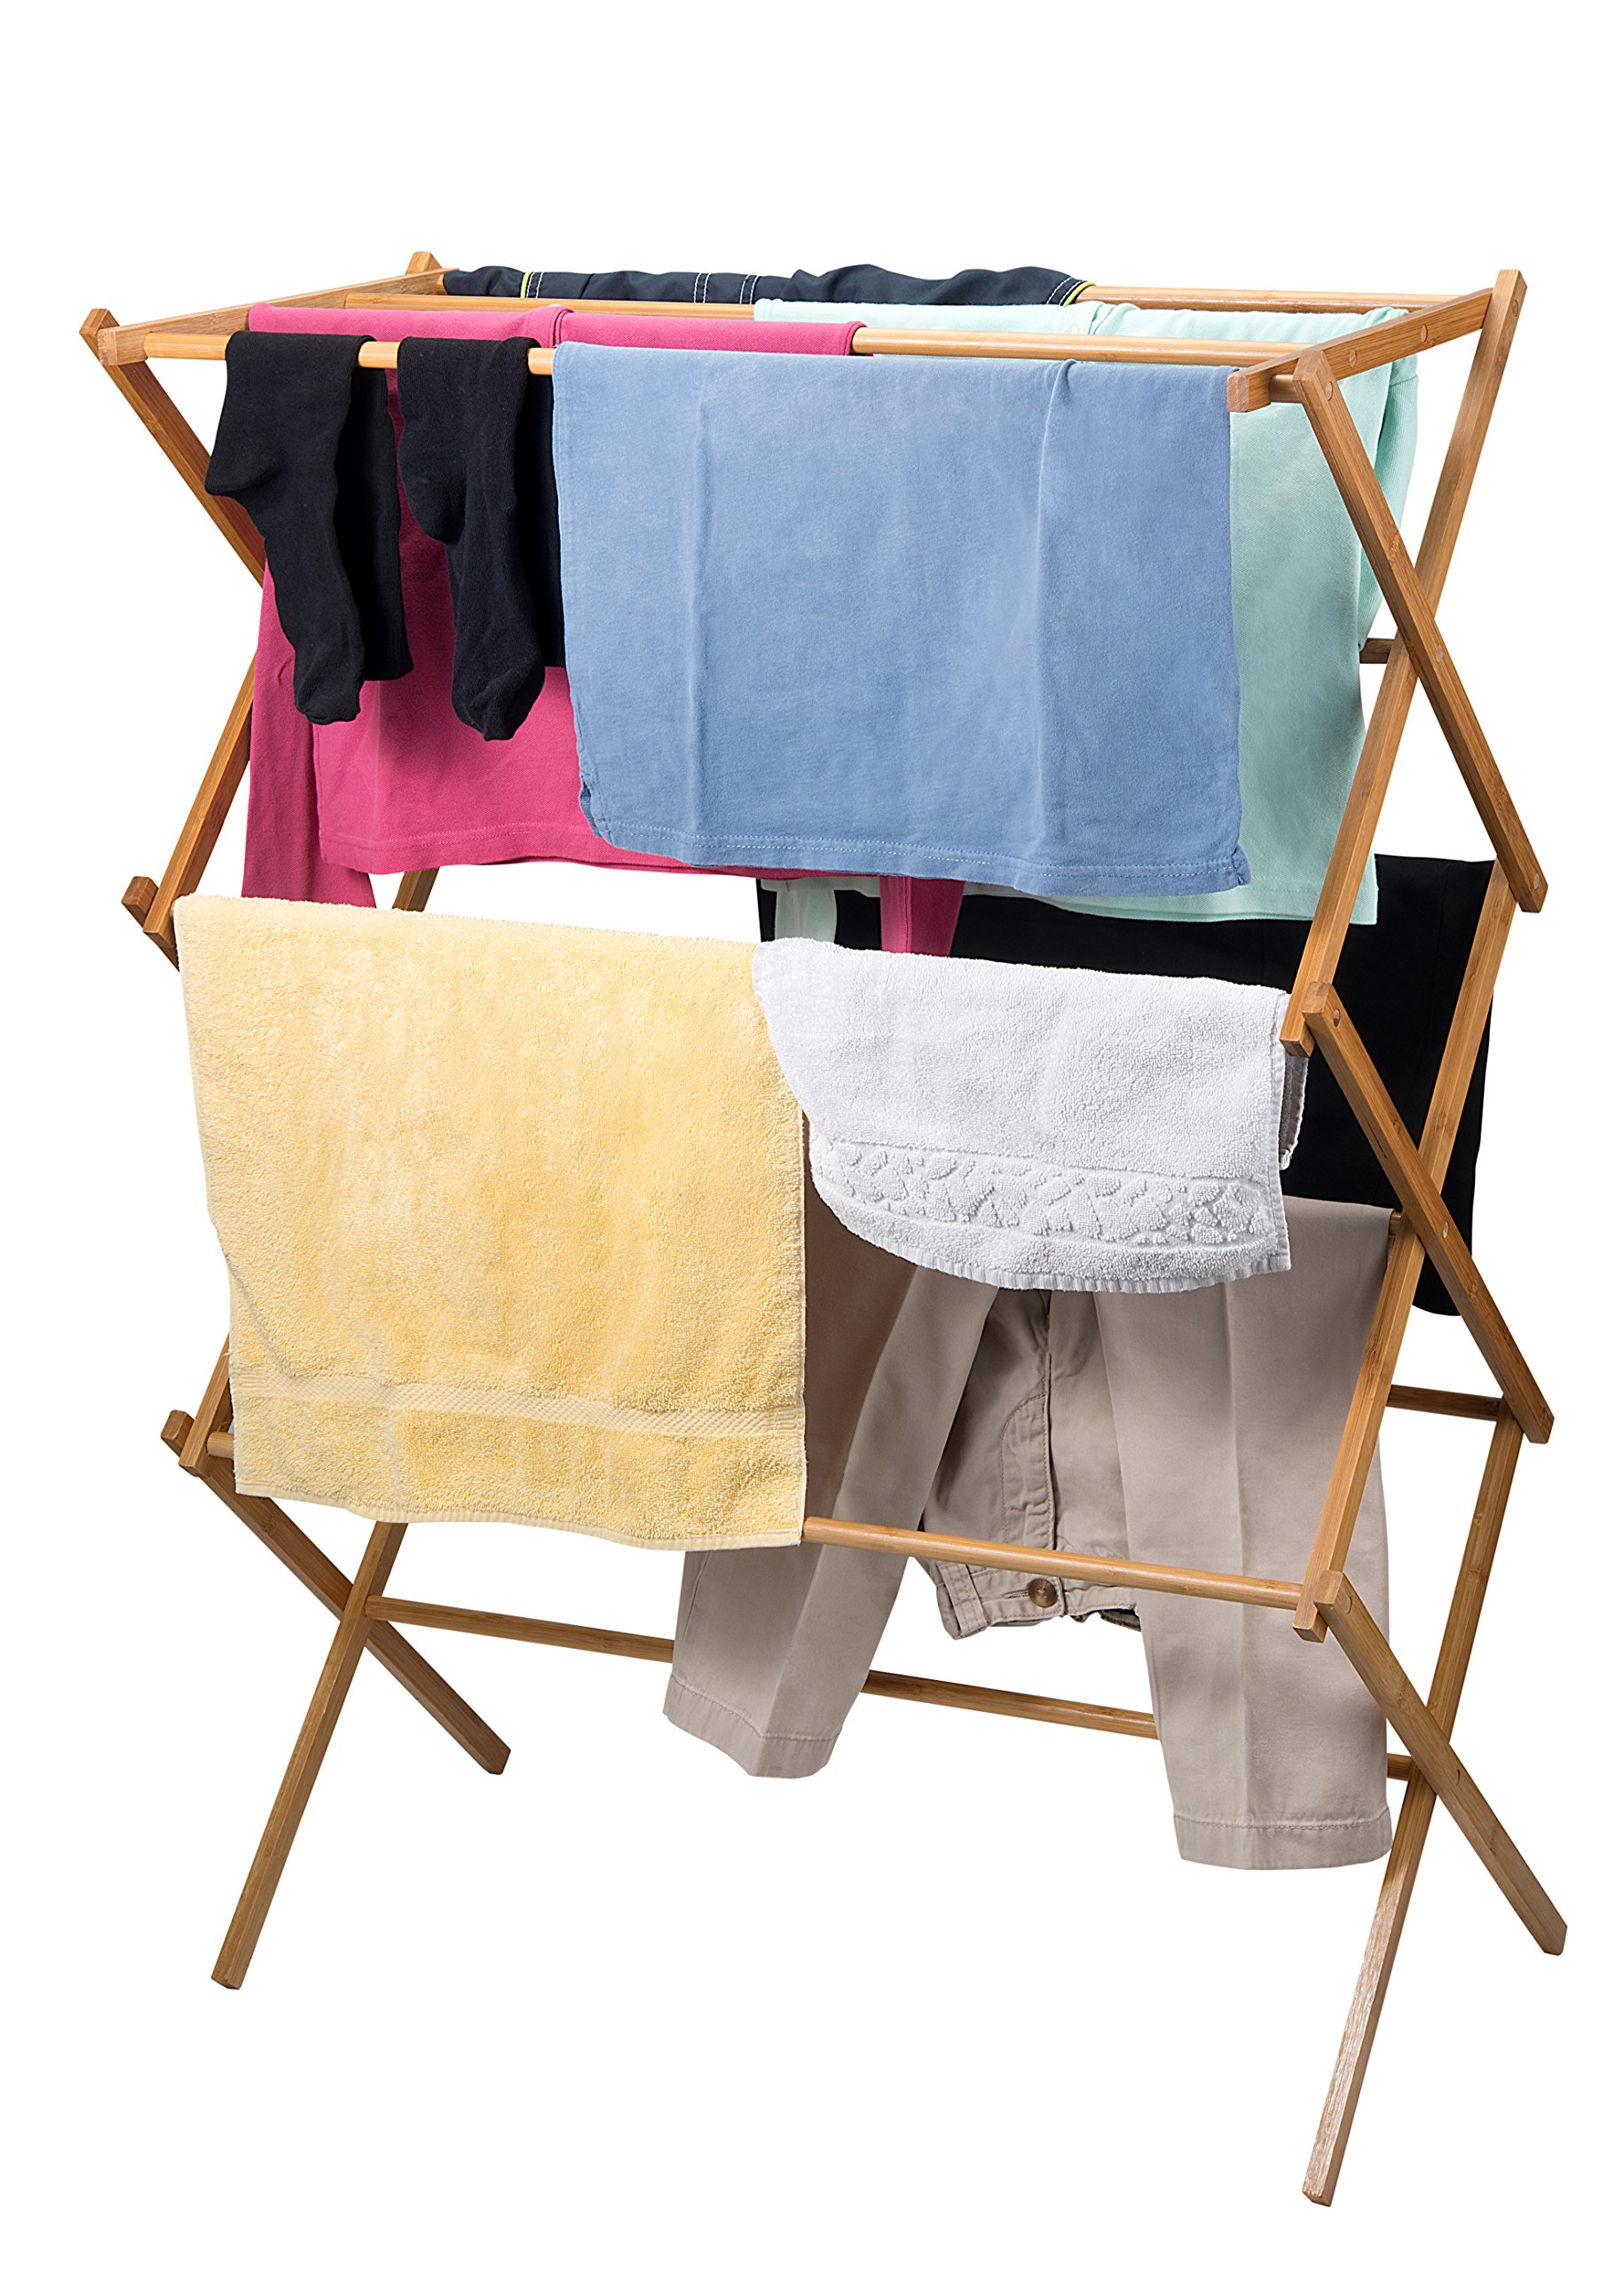 Home-it clothes drying rack - Bamboo Wooden clothes rack  - heavy duty cloth drying stand by Home-it (Image #3)